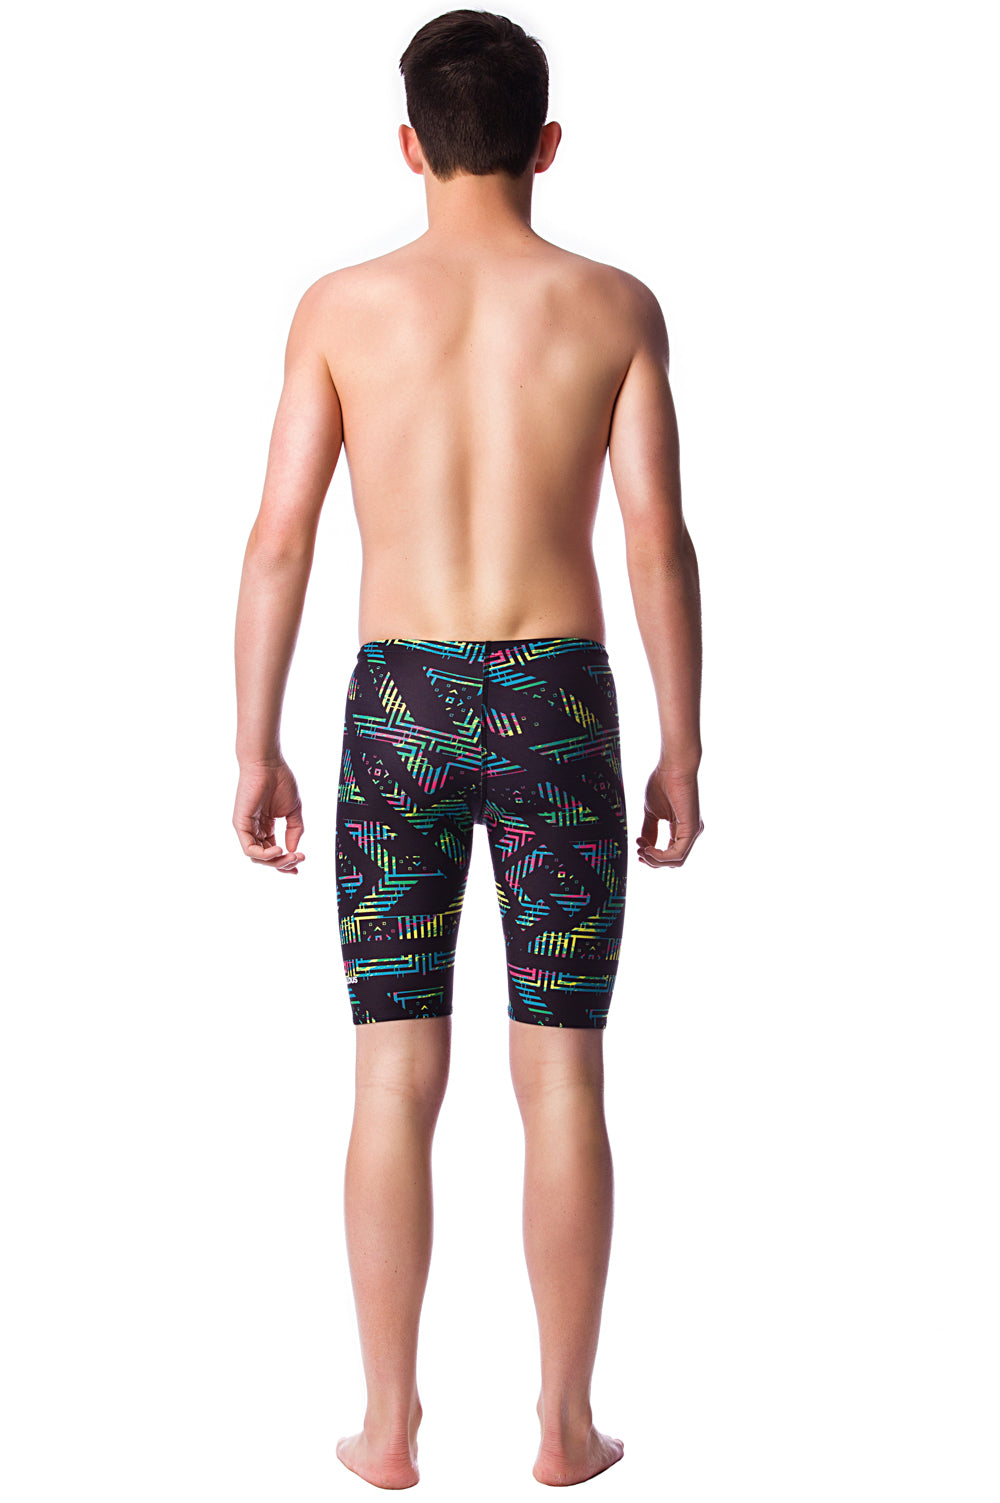 Renegade Boys Jammers - Shop Zealous Training Swimwear